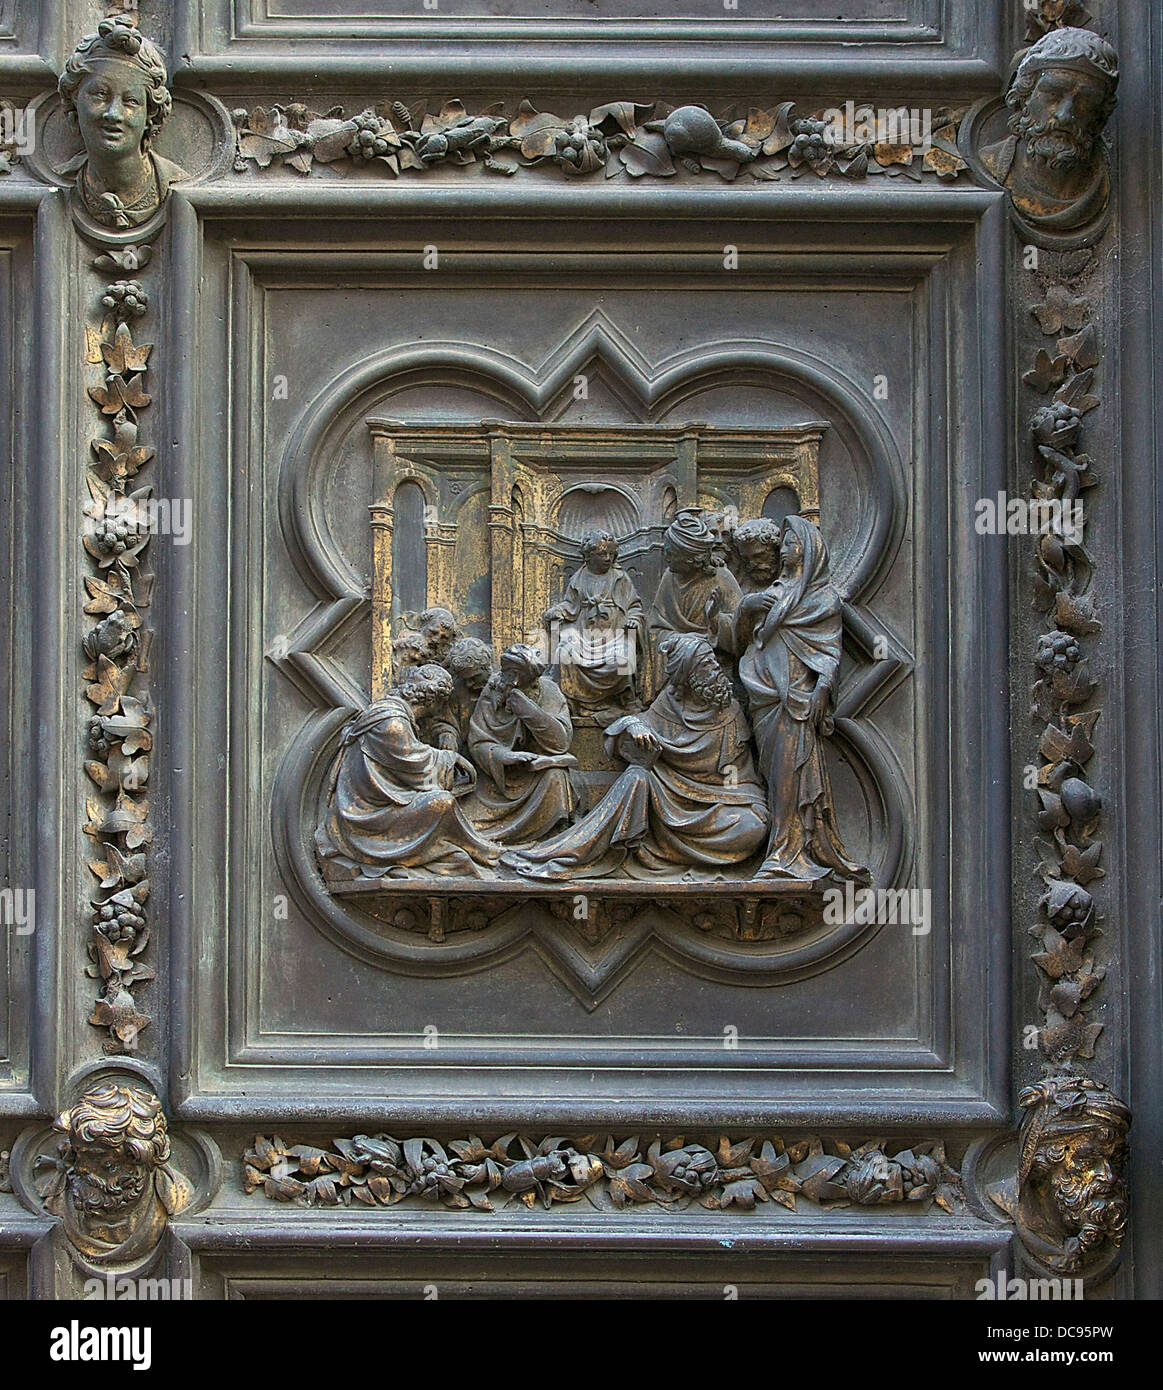 Jesus among the doctors', bronze plaque of the north door of the Florence Baptistery, Italy. - Stock Image